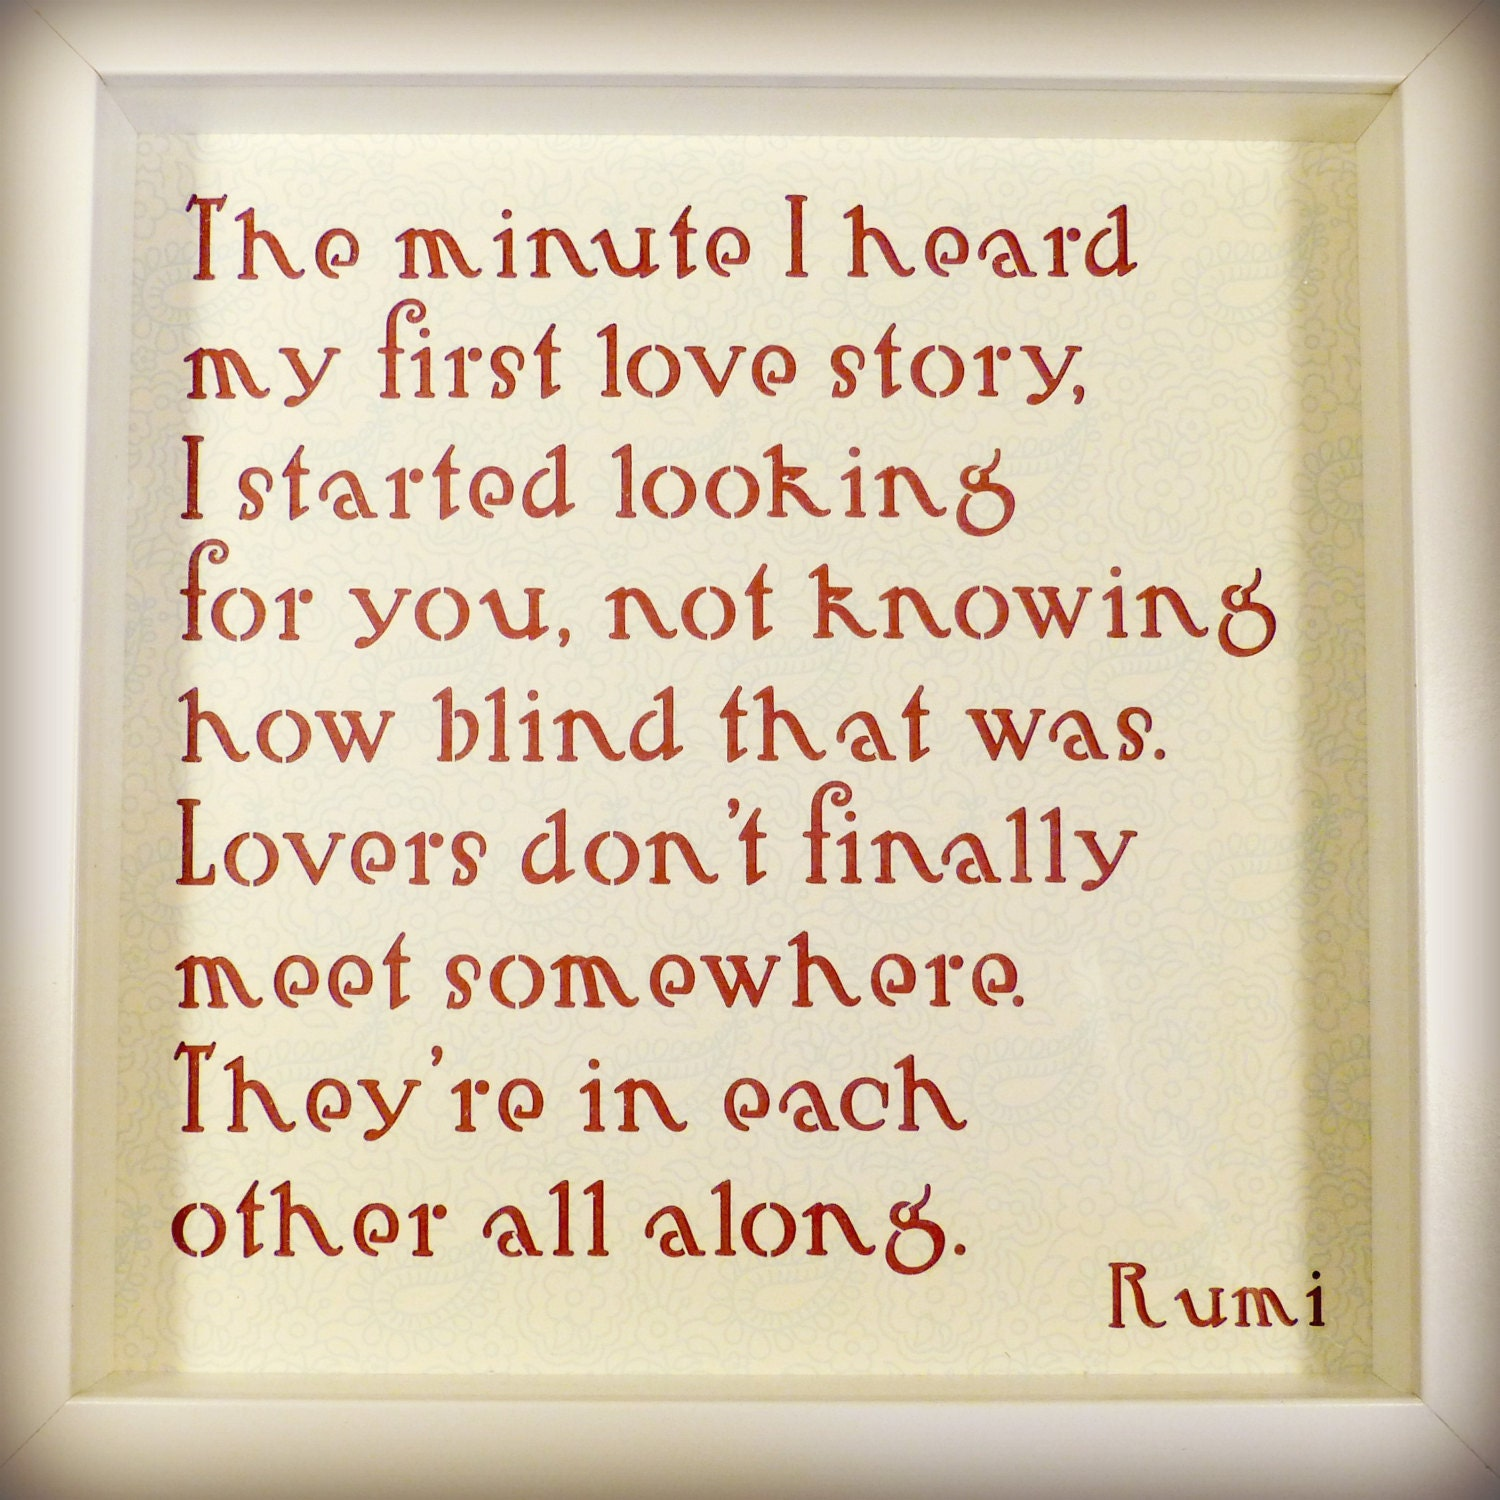 Rumi Framed Quotation Love The Minute I Heard My First Love